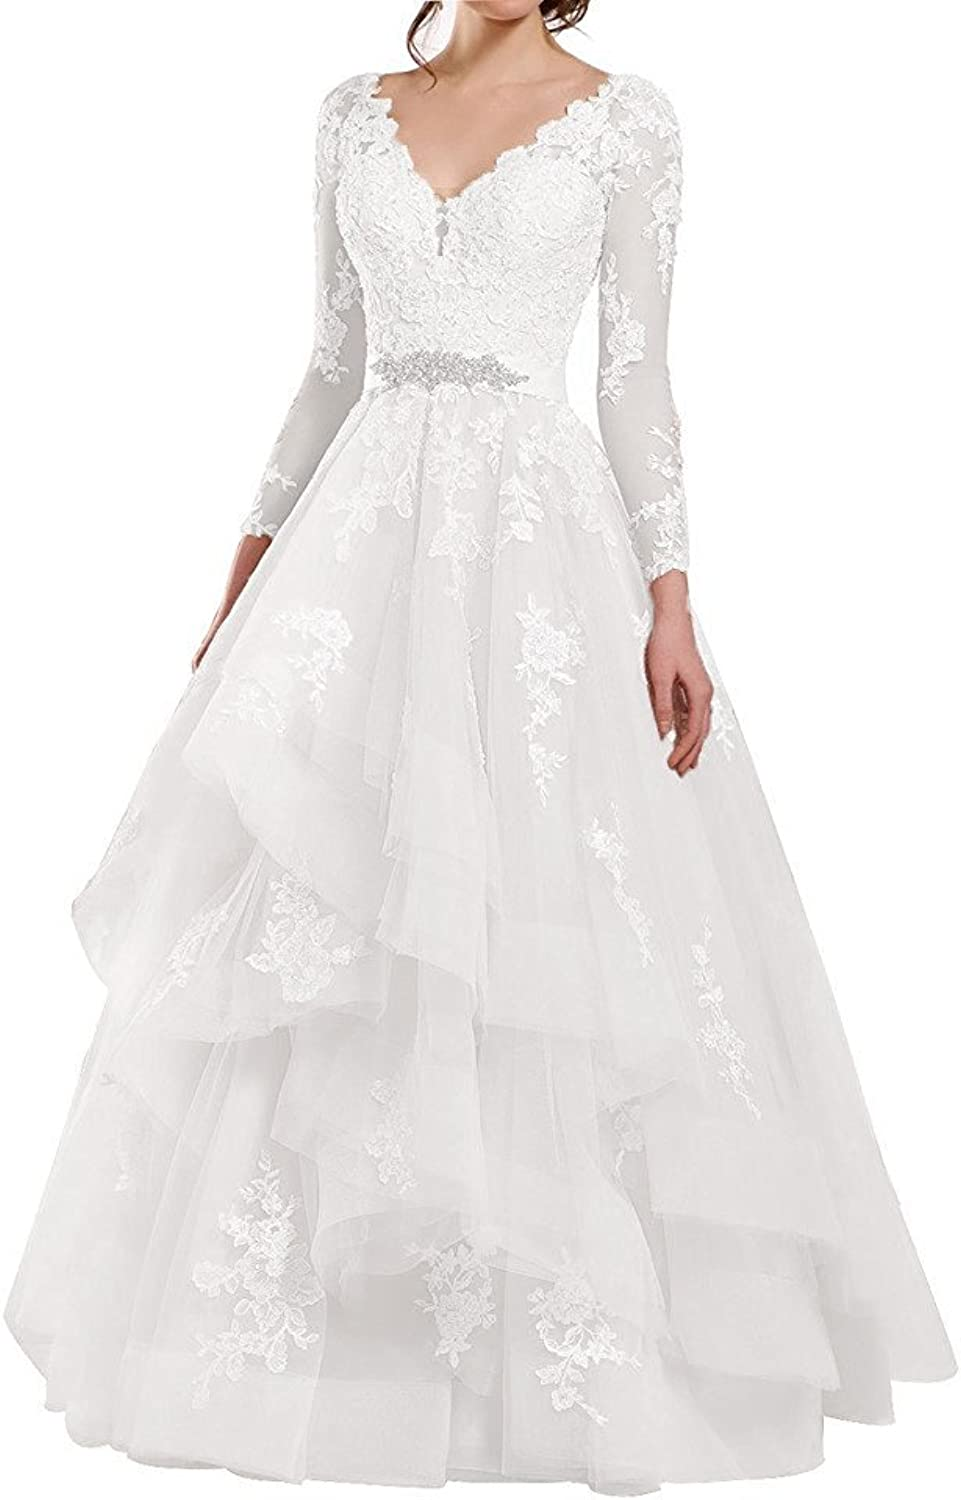 Awishwill See Through Long Sleeve Applique Wedding Dresses Double V Neck Ruffled Organza Bridal Dress For Bride Ivory,20W